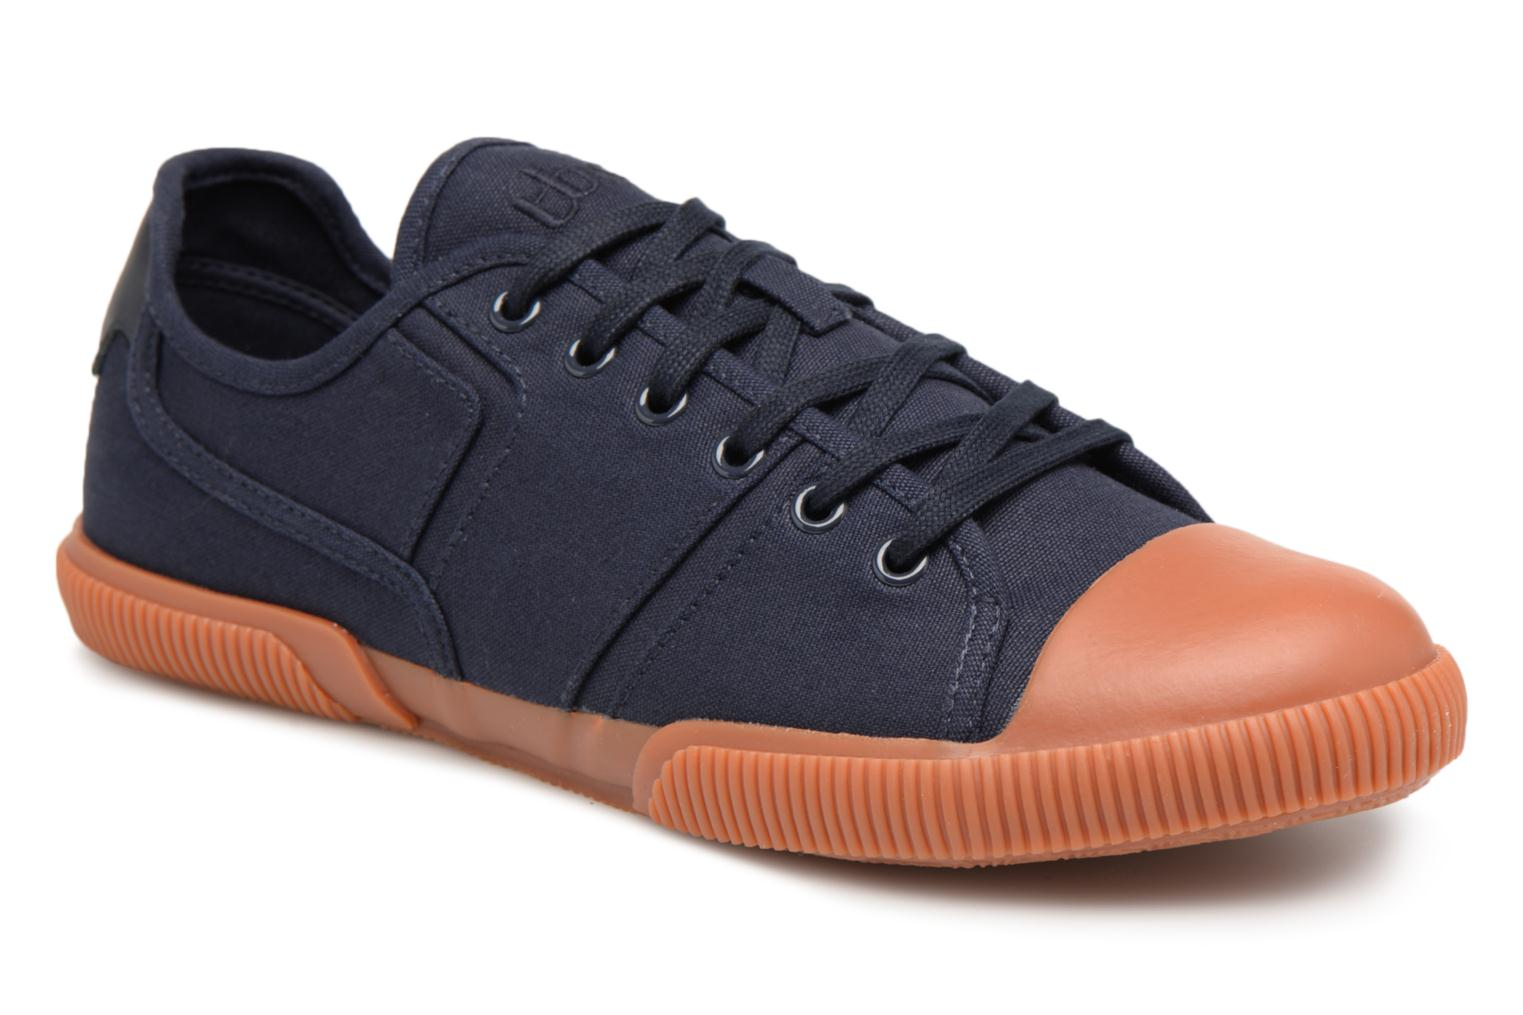 Marques Chaussure homme TBS homme Cobbras-S8072 Marine